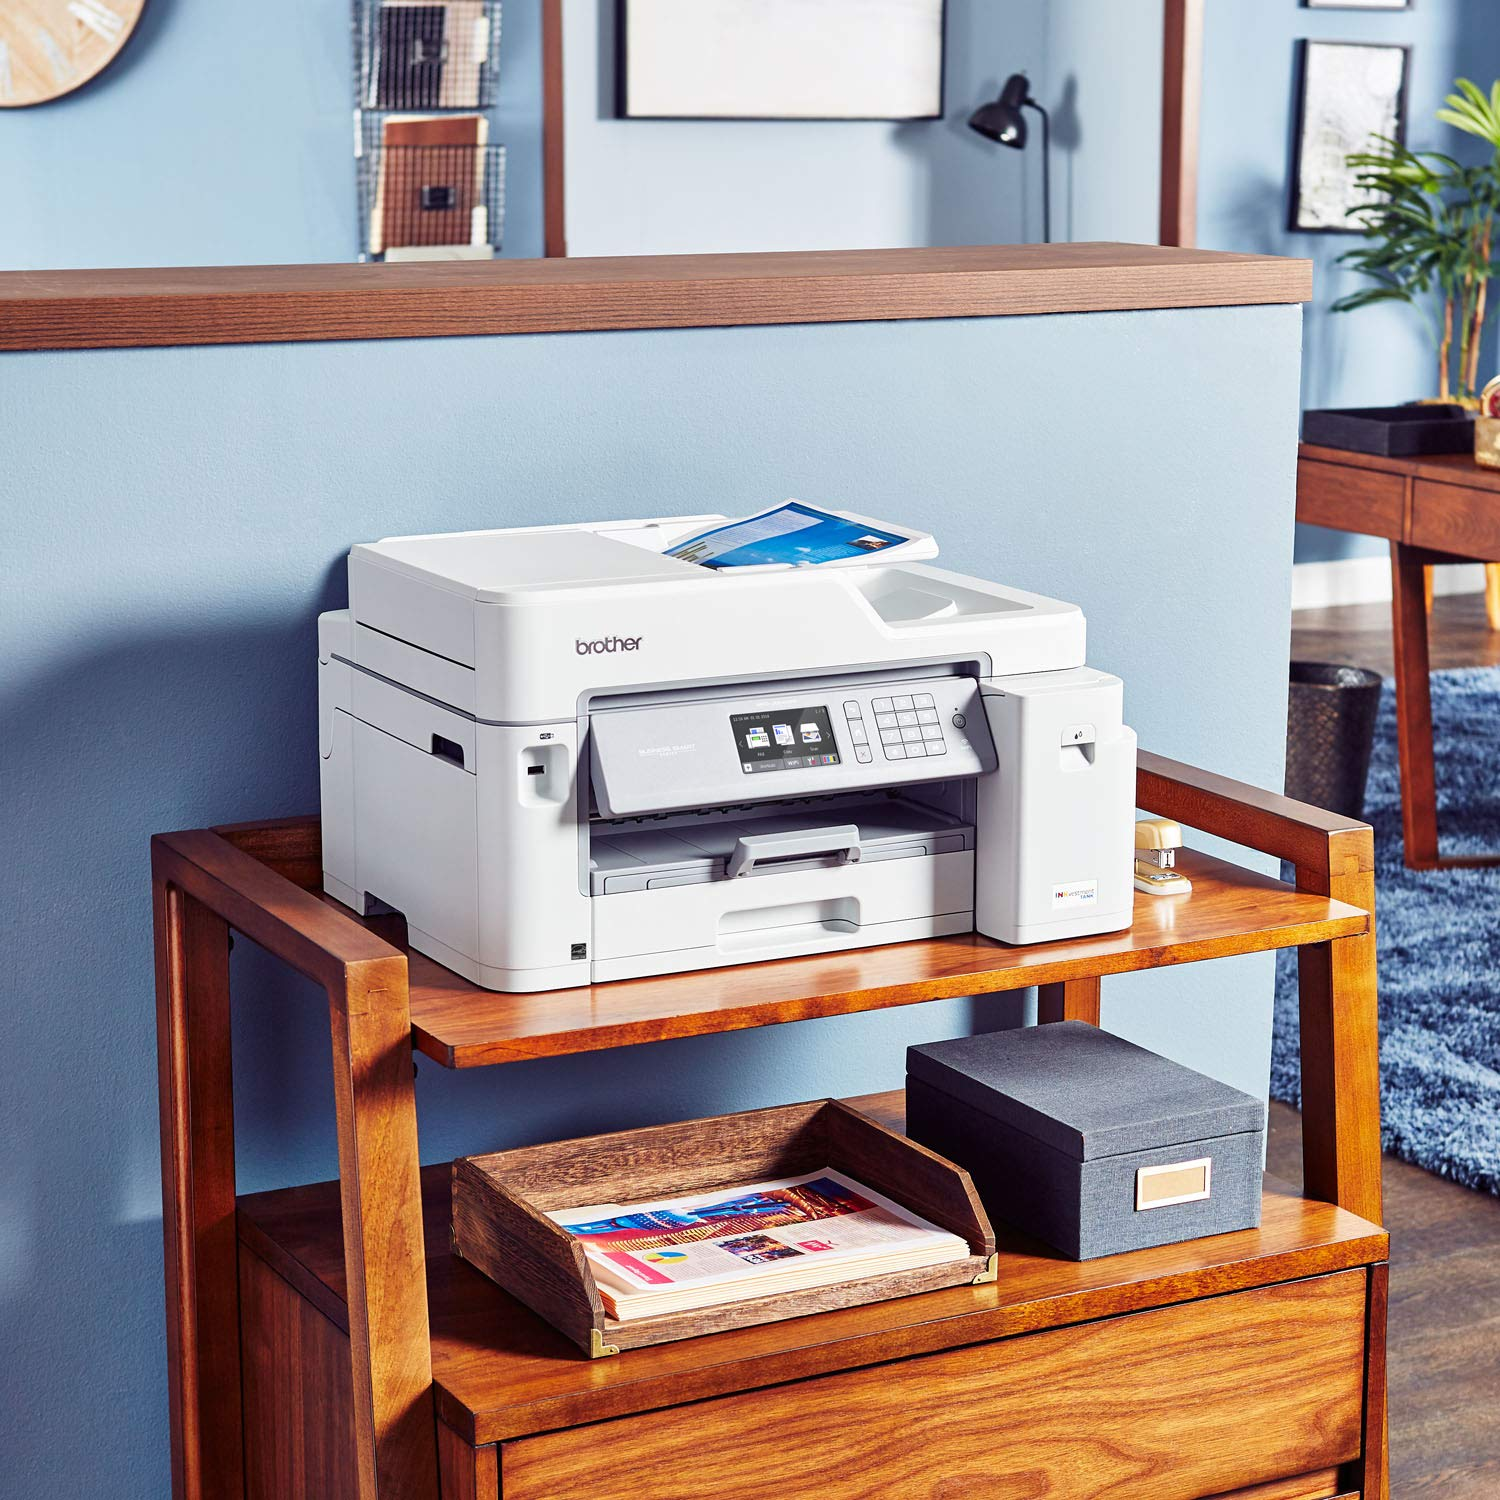 Brother Inkjet Printer, MFC-J5845DW, INKvestment Color Inkjet All-in-One Printer with Wireless, Duplex Printing and Up to 1-Year of Ink in-Box, Amazon Dash Replenishment Enabled by Brother (Image #2)